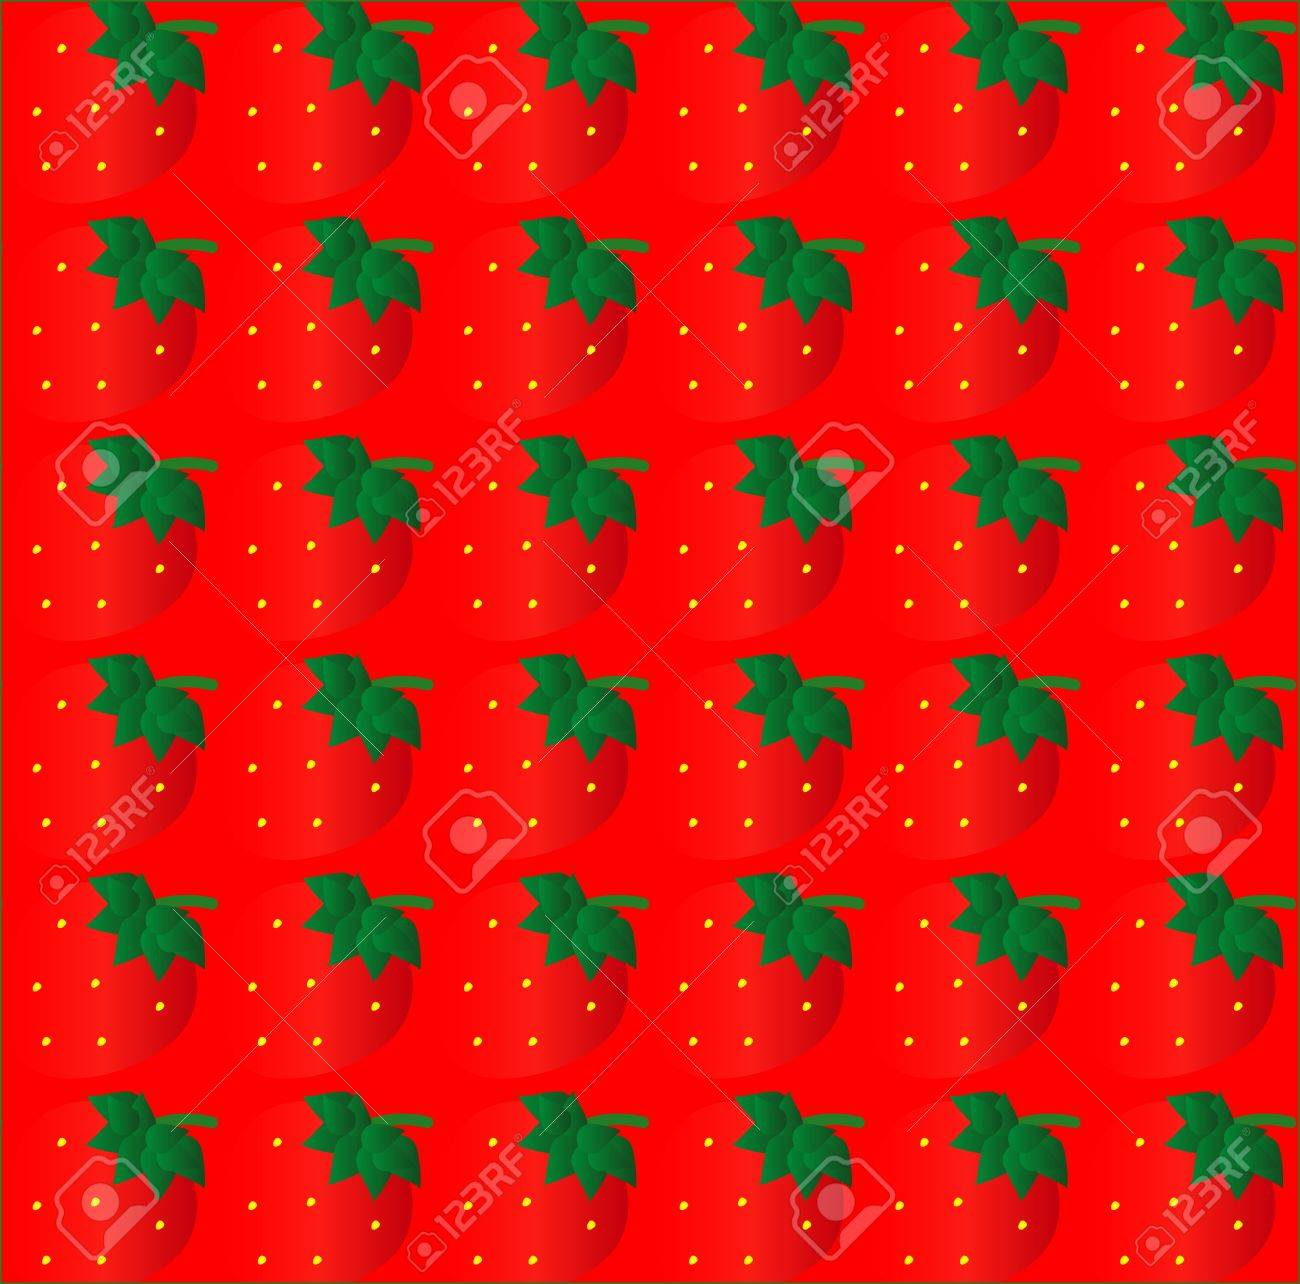 strawberry seamless texture on red background Stock Vector - 9479616